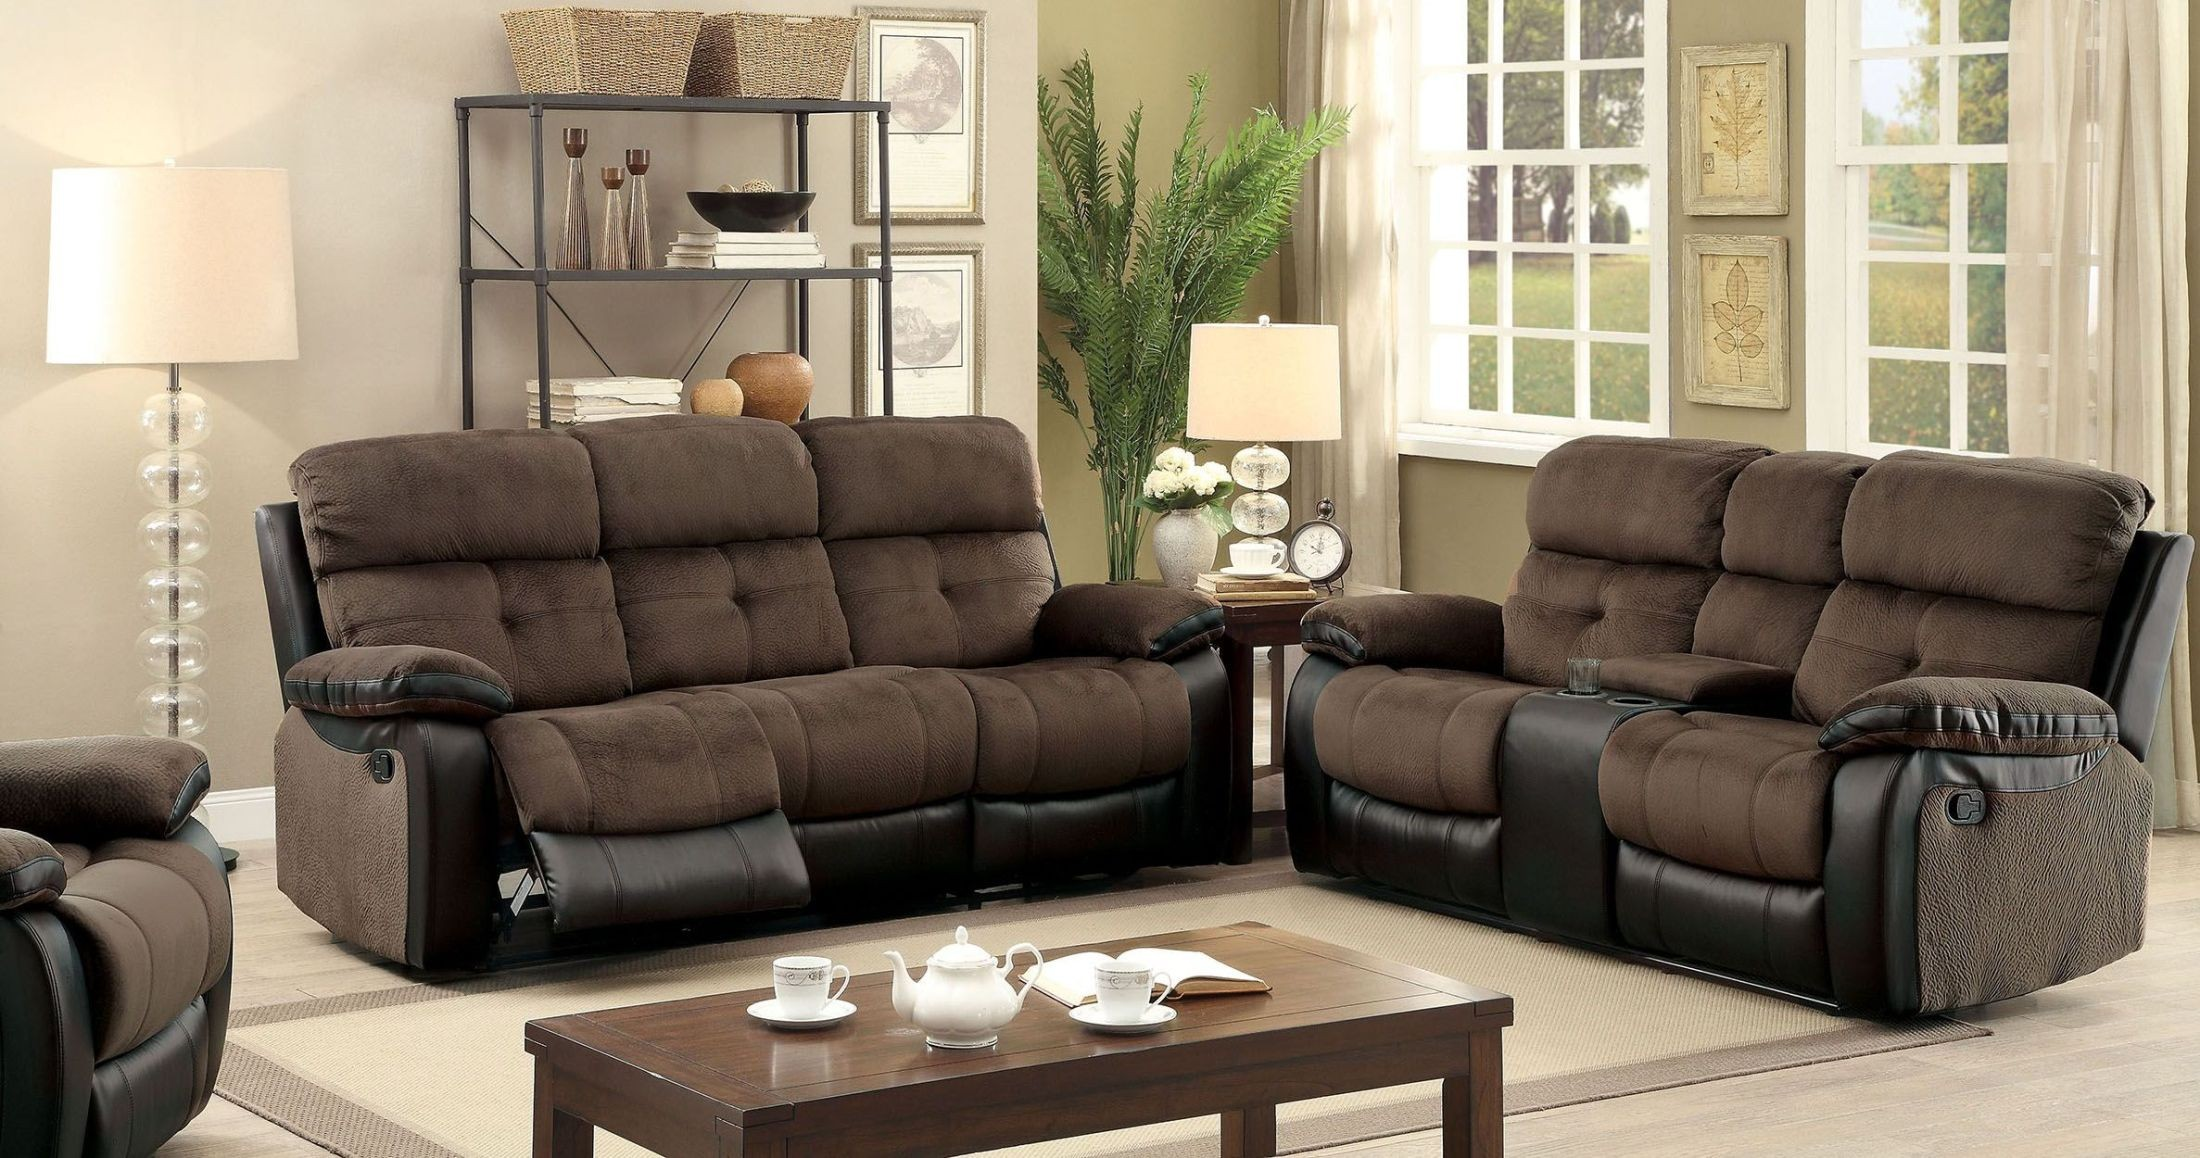 Hadley I Espresso Reclining Living Room Set From Furniture